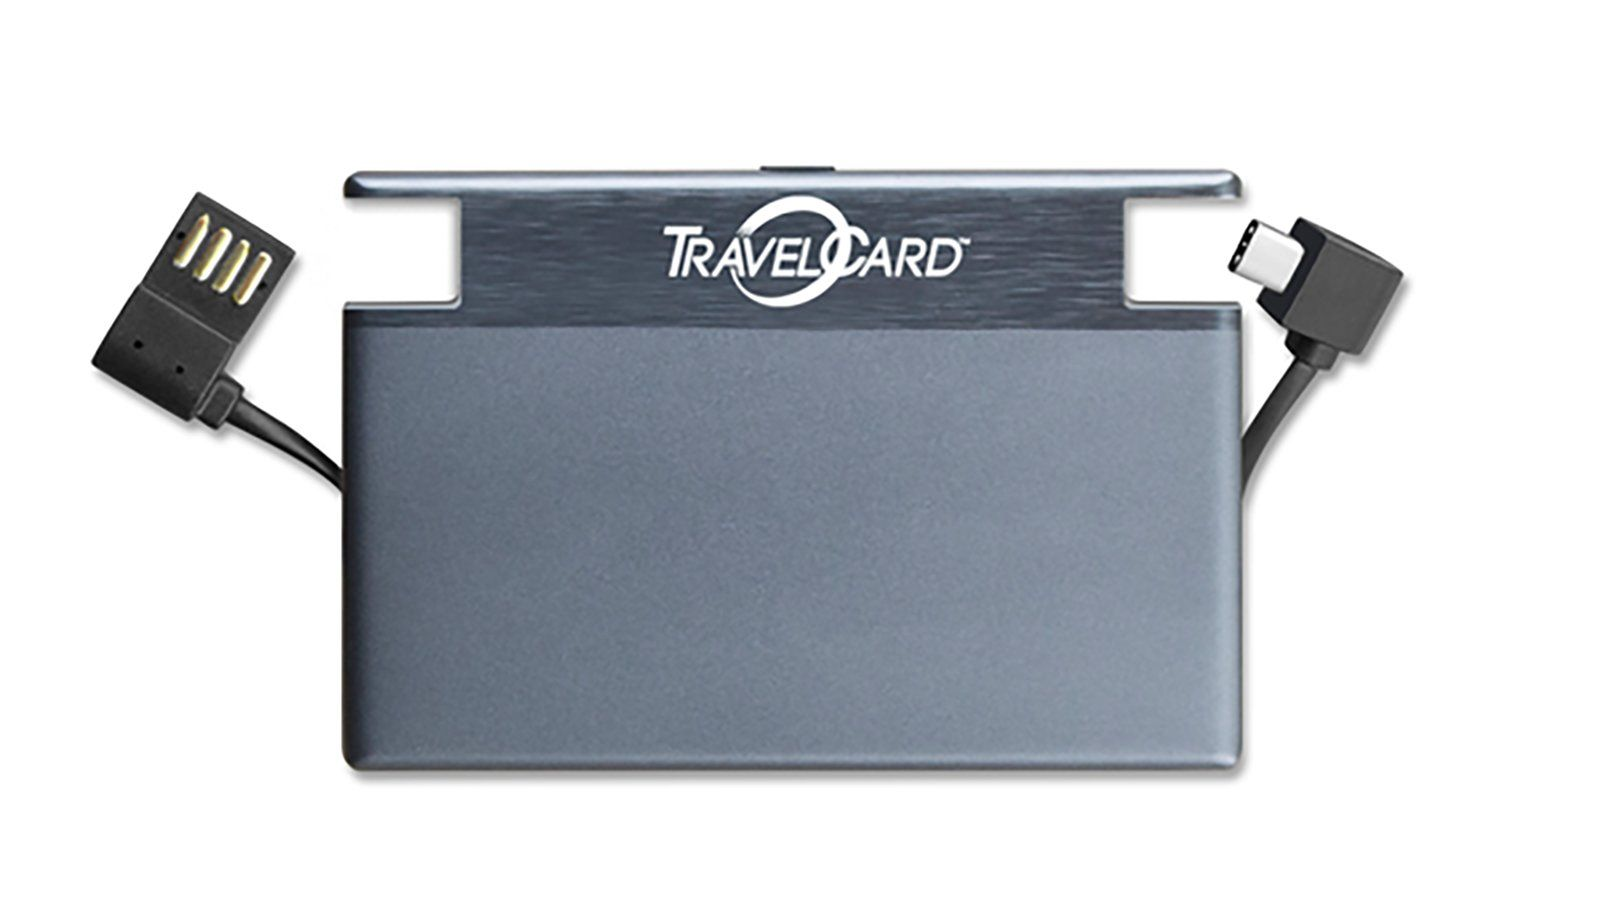 TravelCard charger